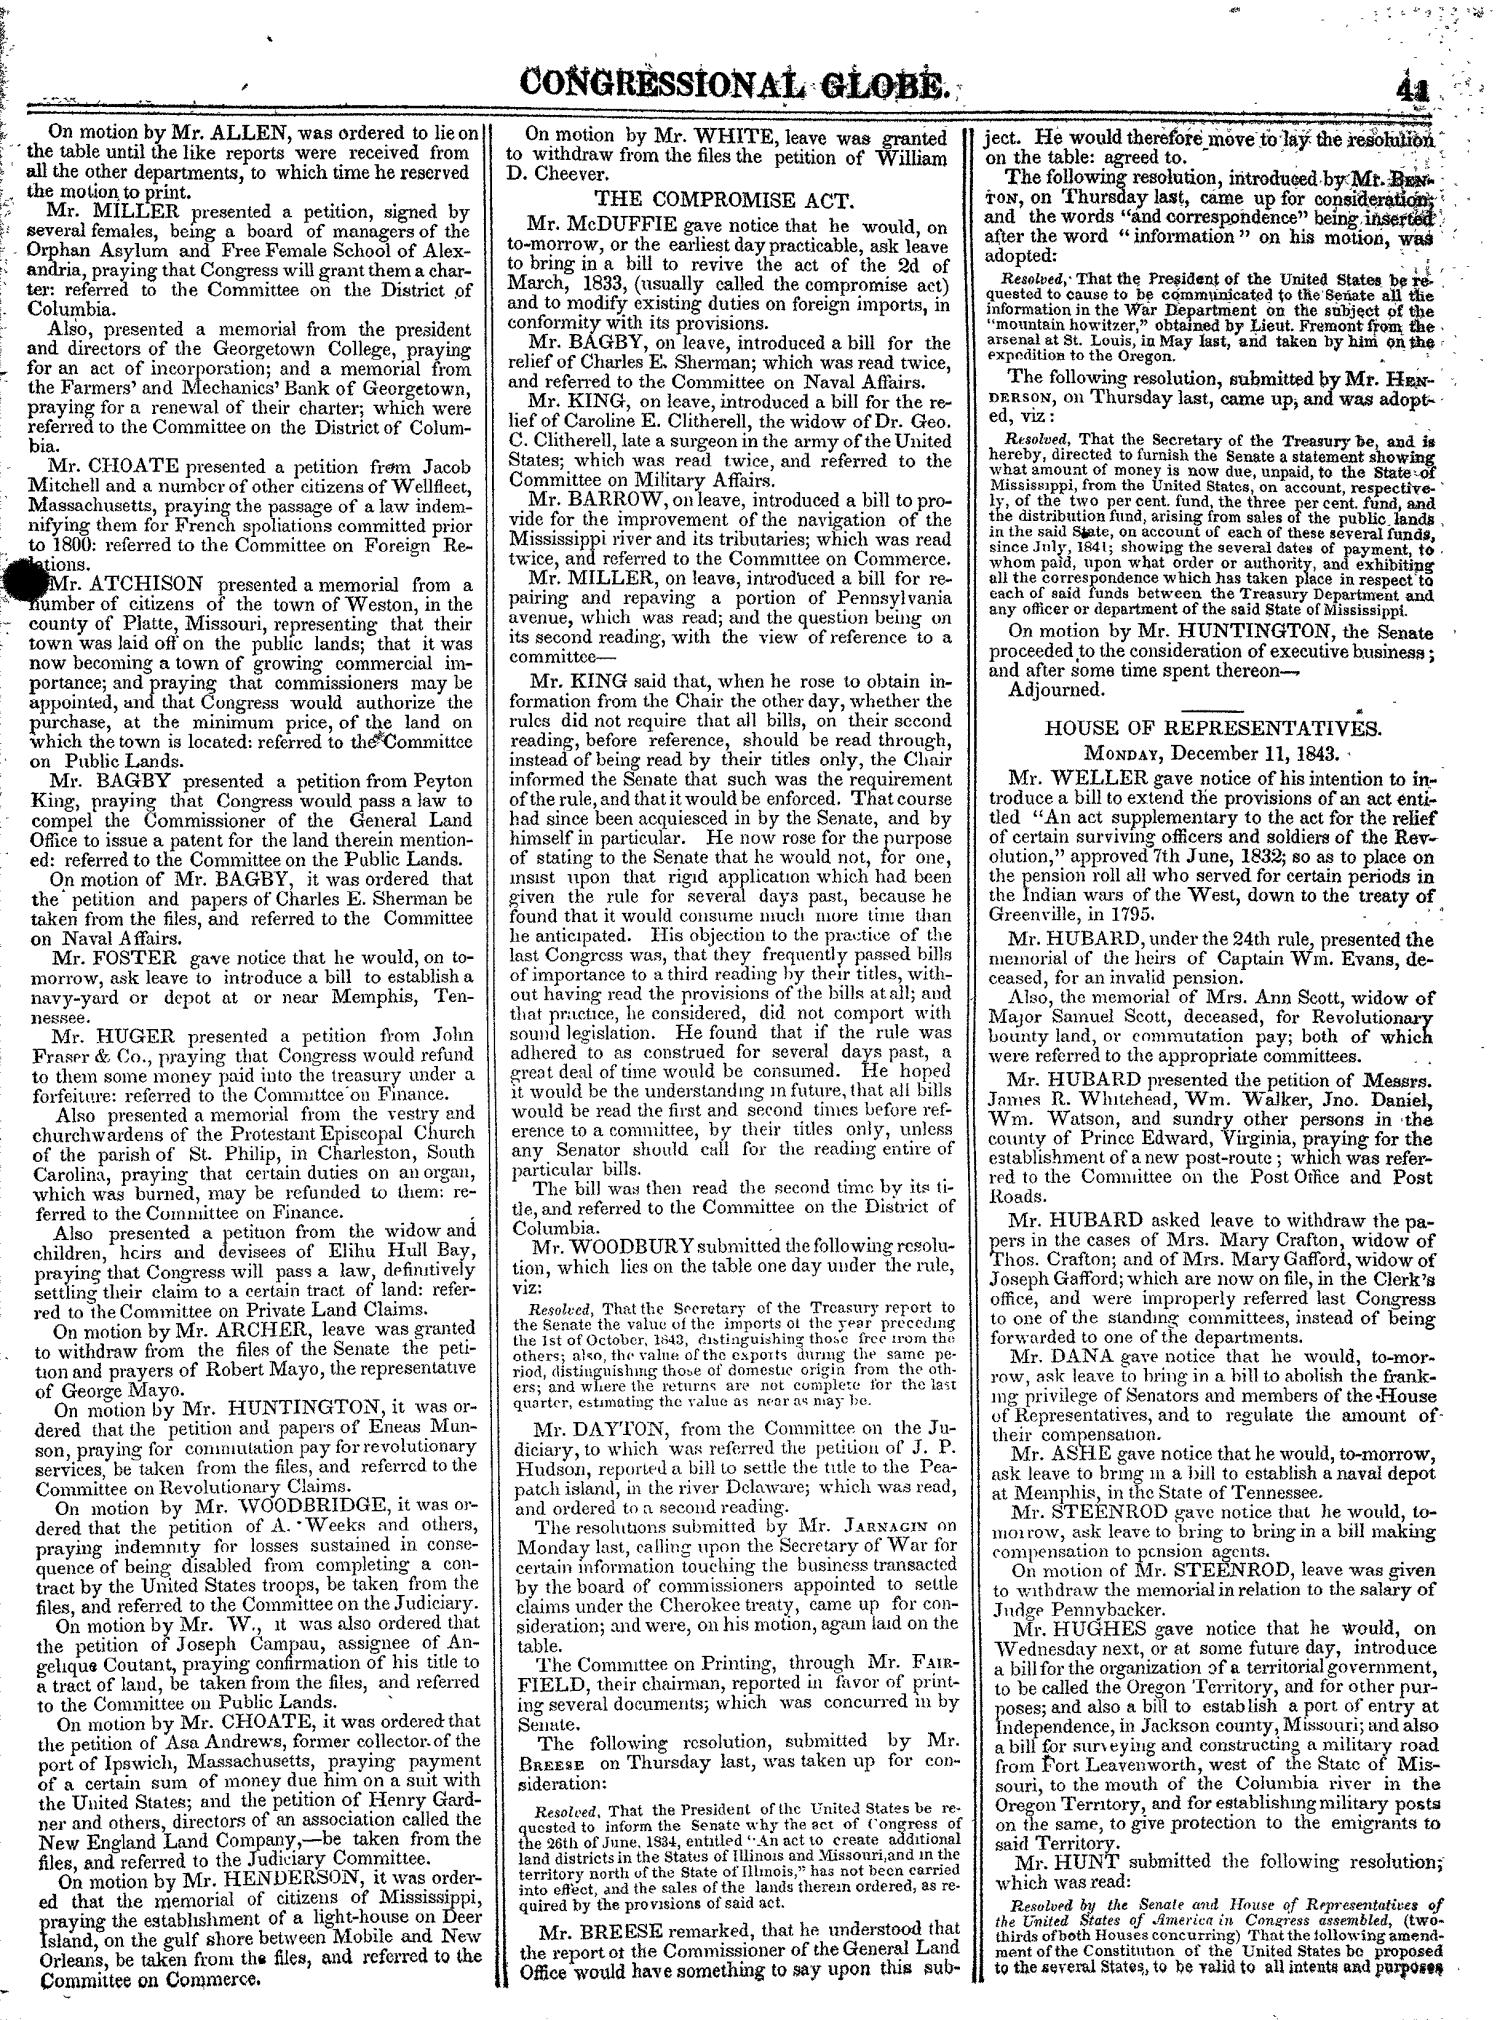 The Congressional Globe, Volume 13, Part 1: Twenty-Eighth Congress, First Session                                                                                                      41